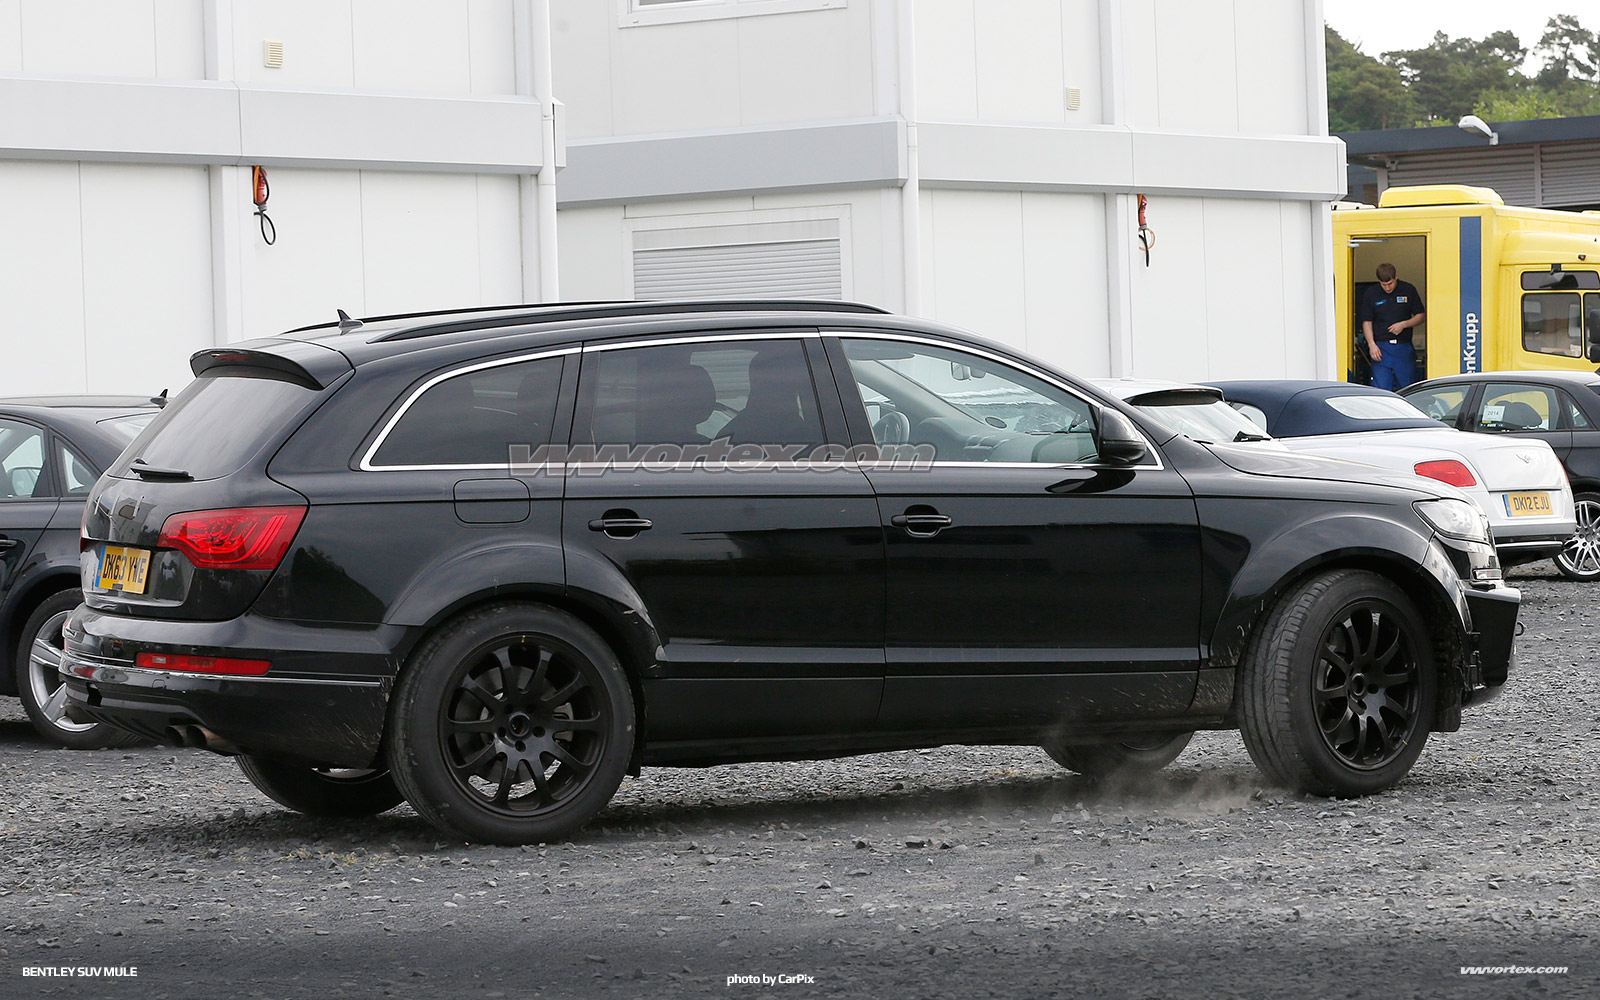 bentley-suv-mule-spy-photos-366